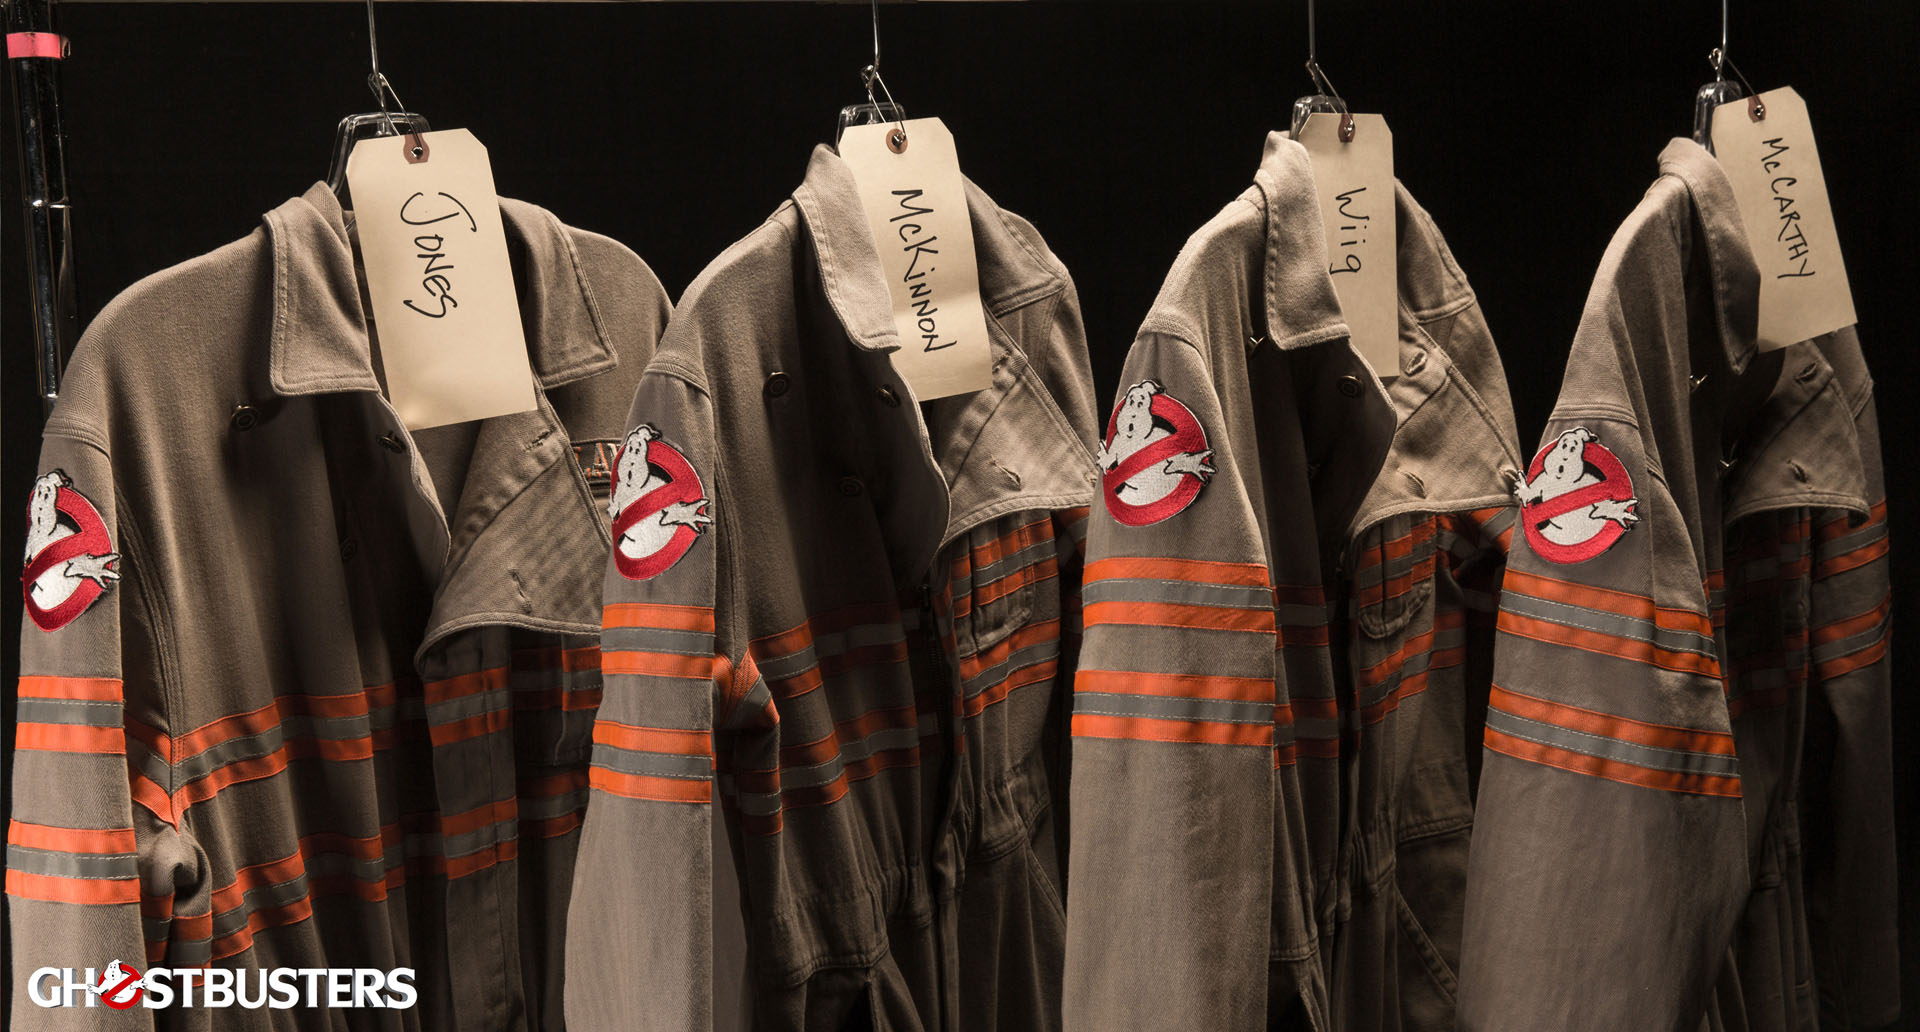 ghostbusters_uniformes